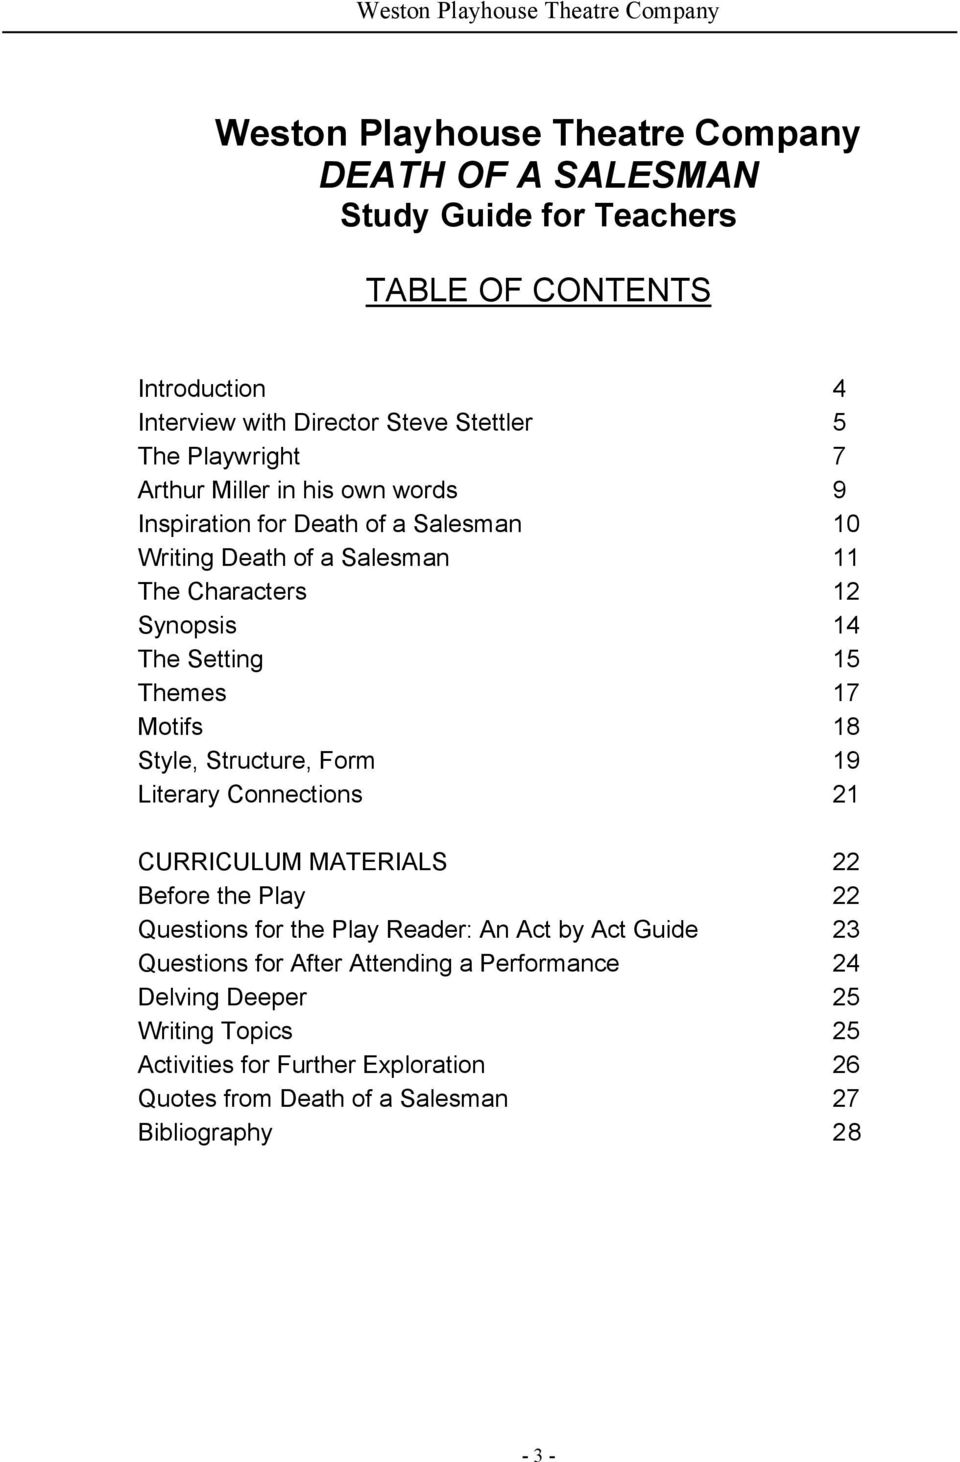 DEATH OF A SALESMAN Study Guide for Teachers - PDF